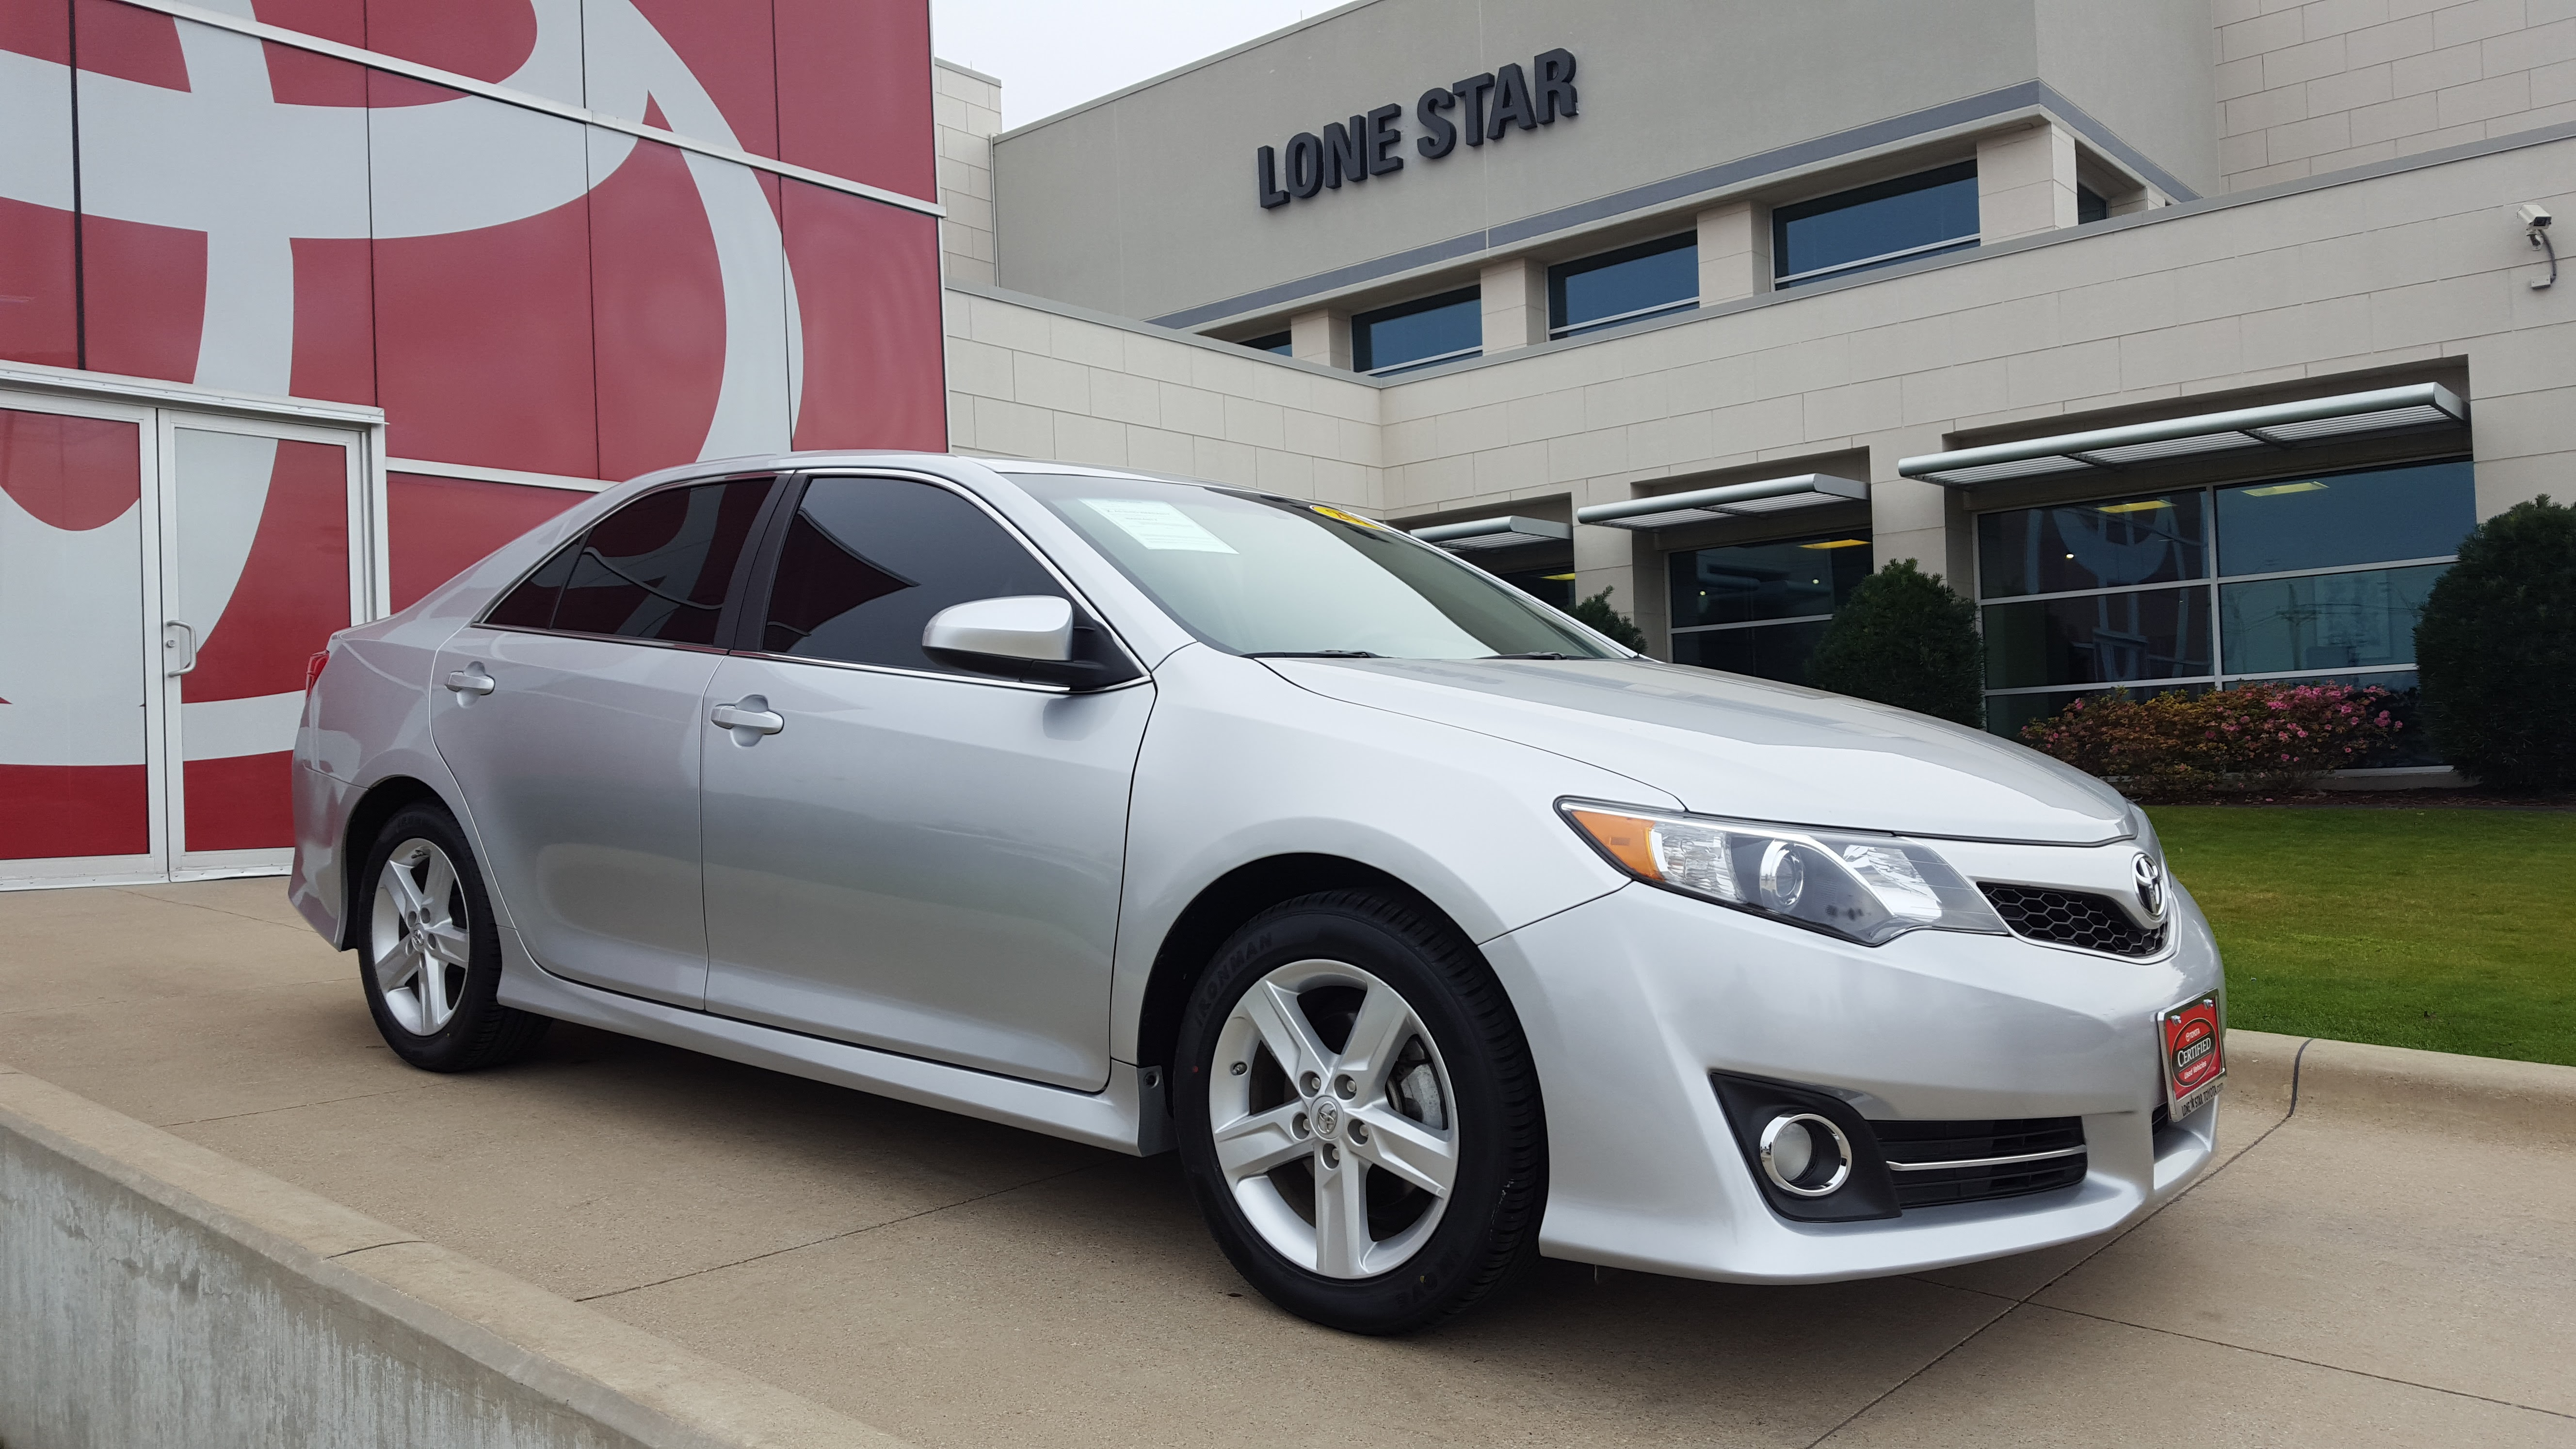 Lone Star Toyota of Lewisville image 12